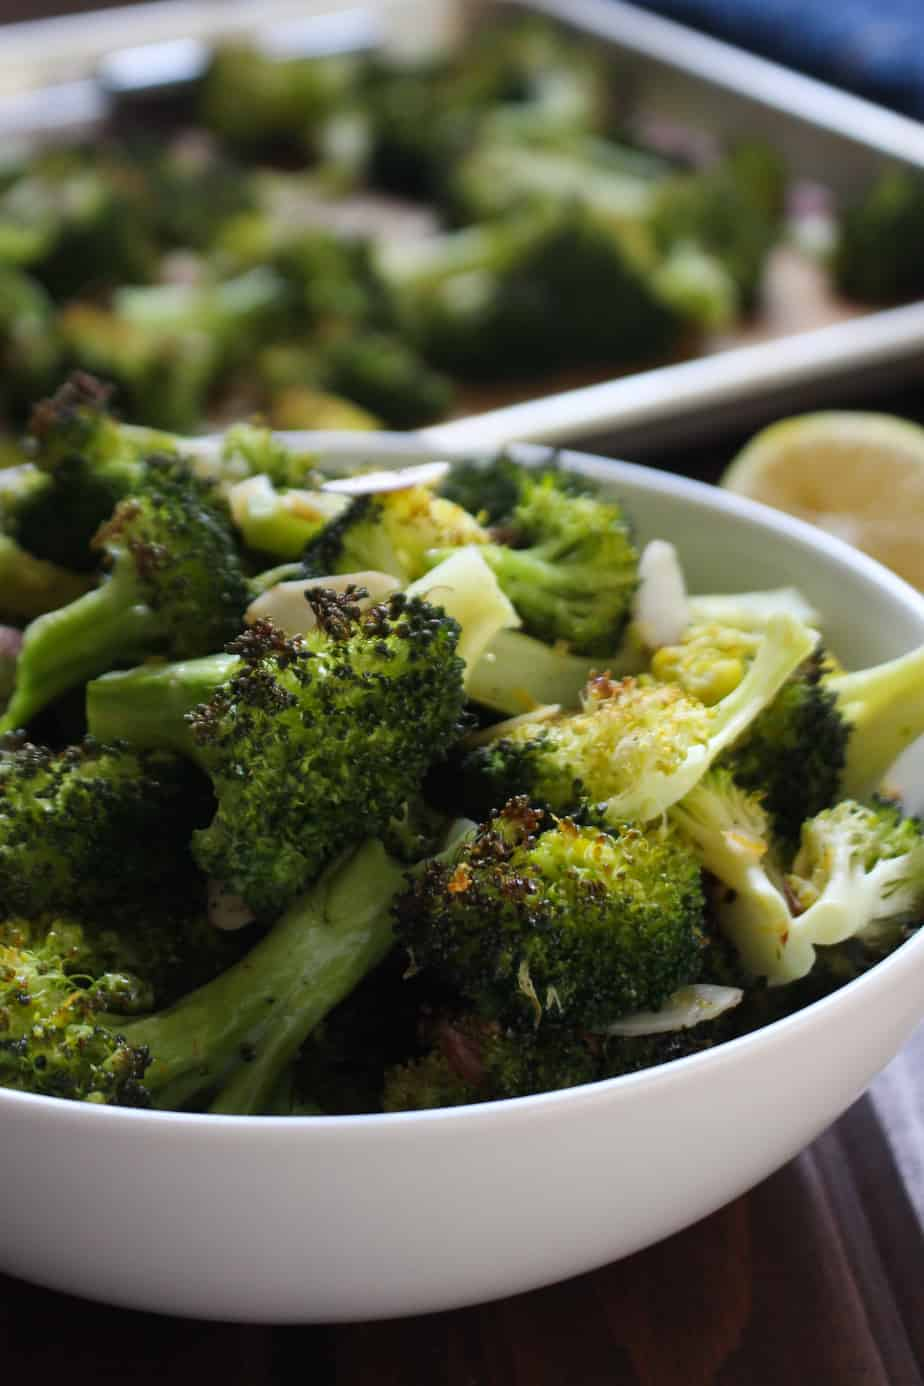 Lemon Roasted Broccoli with Almonds | Frugal Nutrition